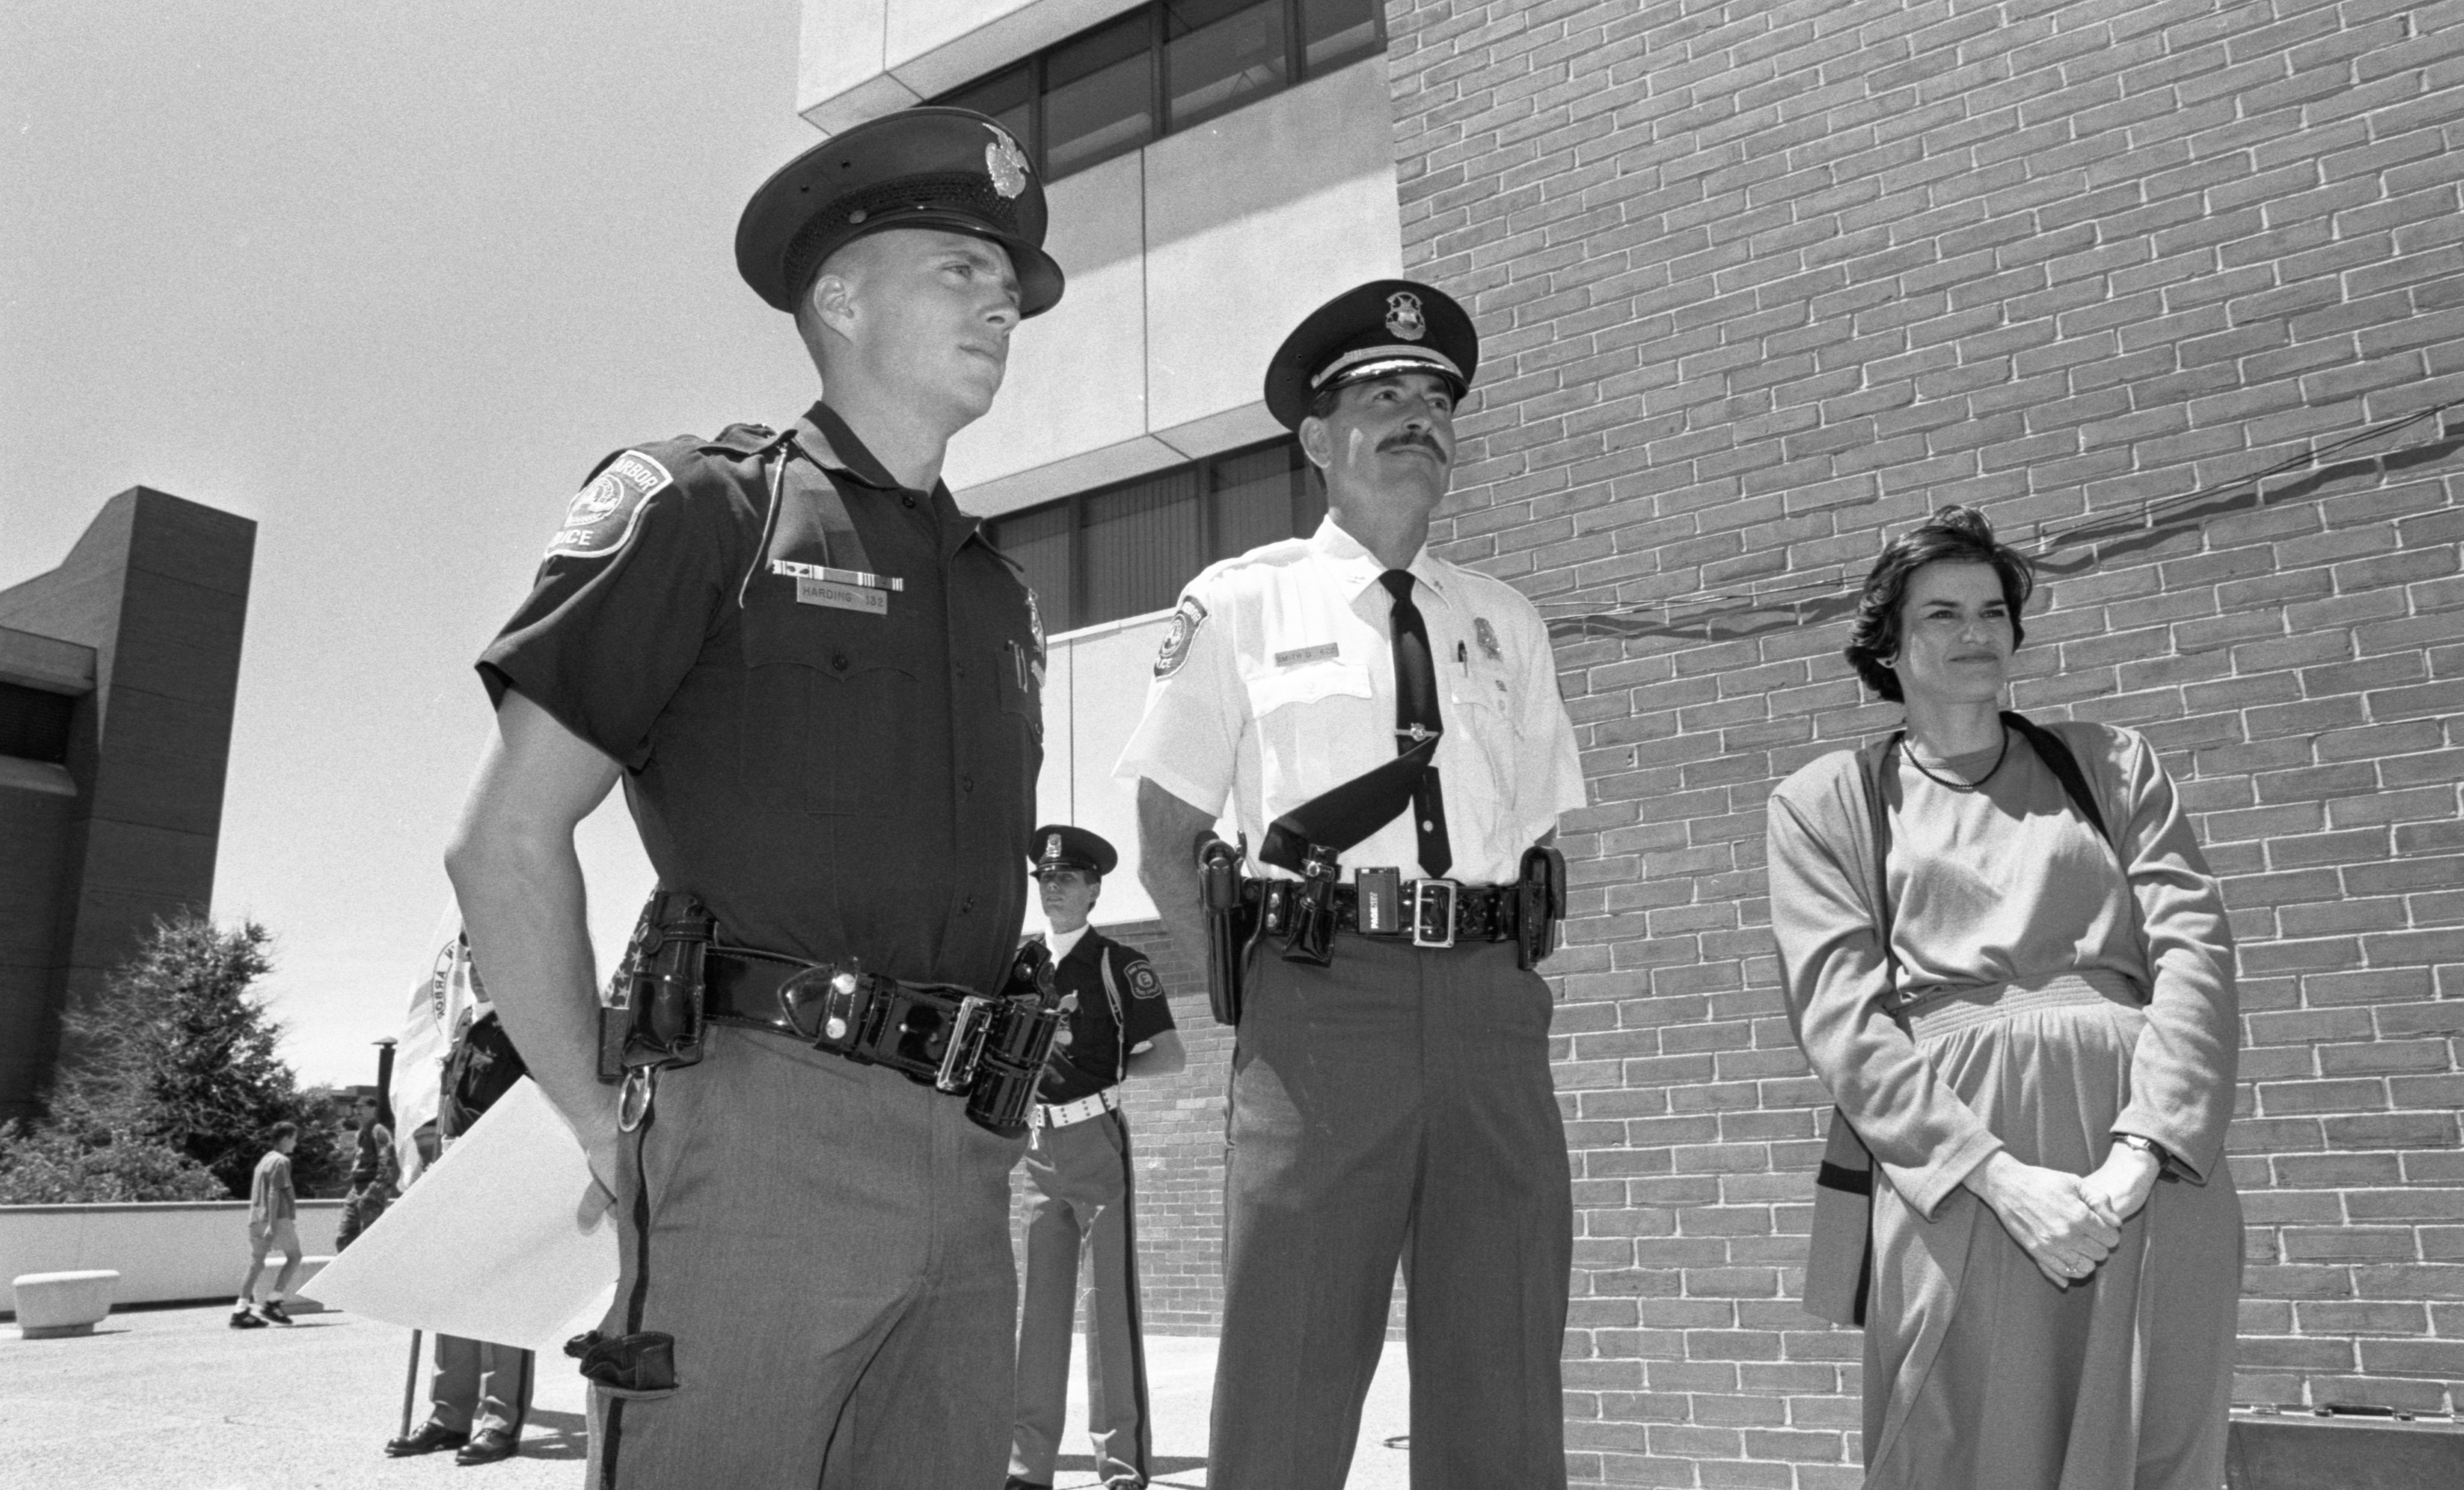 Officer Kevin Harding Honored At Ann Arbor Police Department Awards Ceremony, June 1991 image